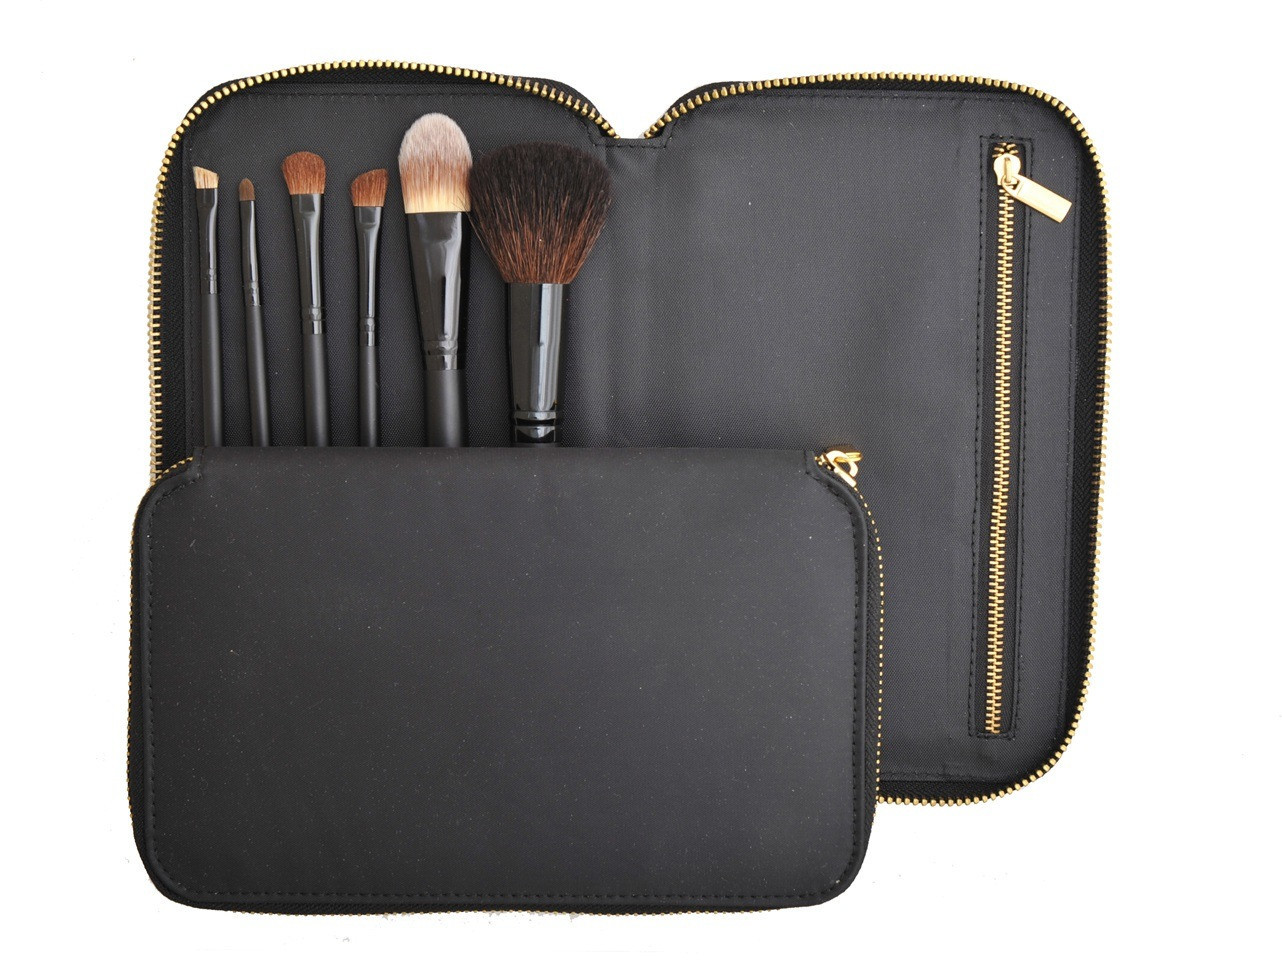 6PCS Makeup Brushes with Natural Hair and Zipper Pouch